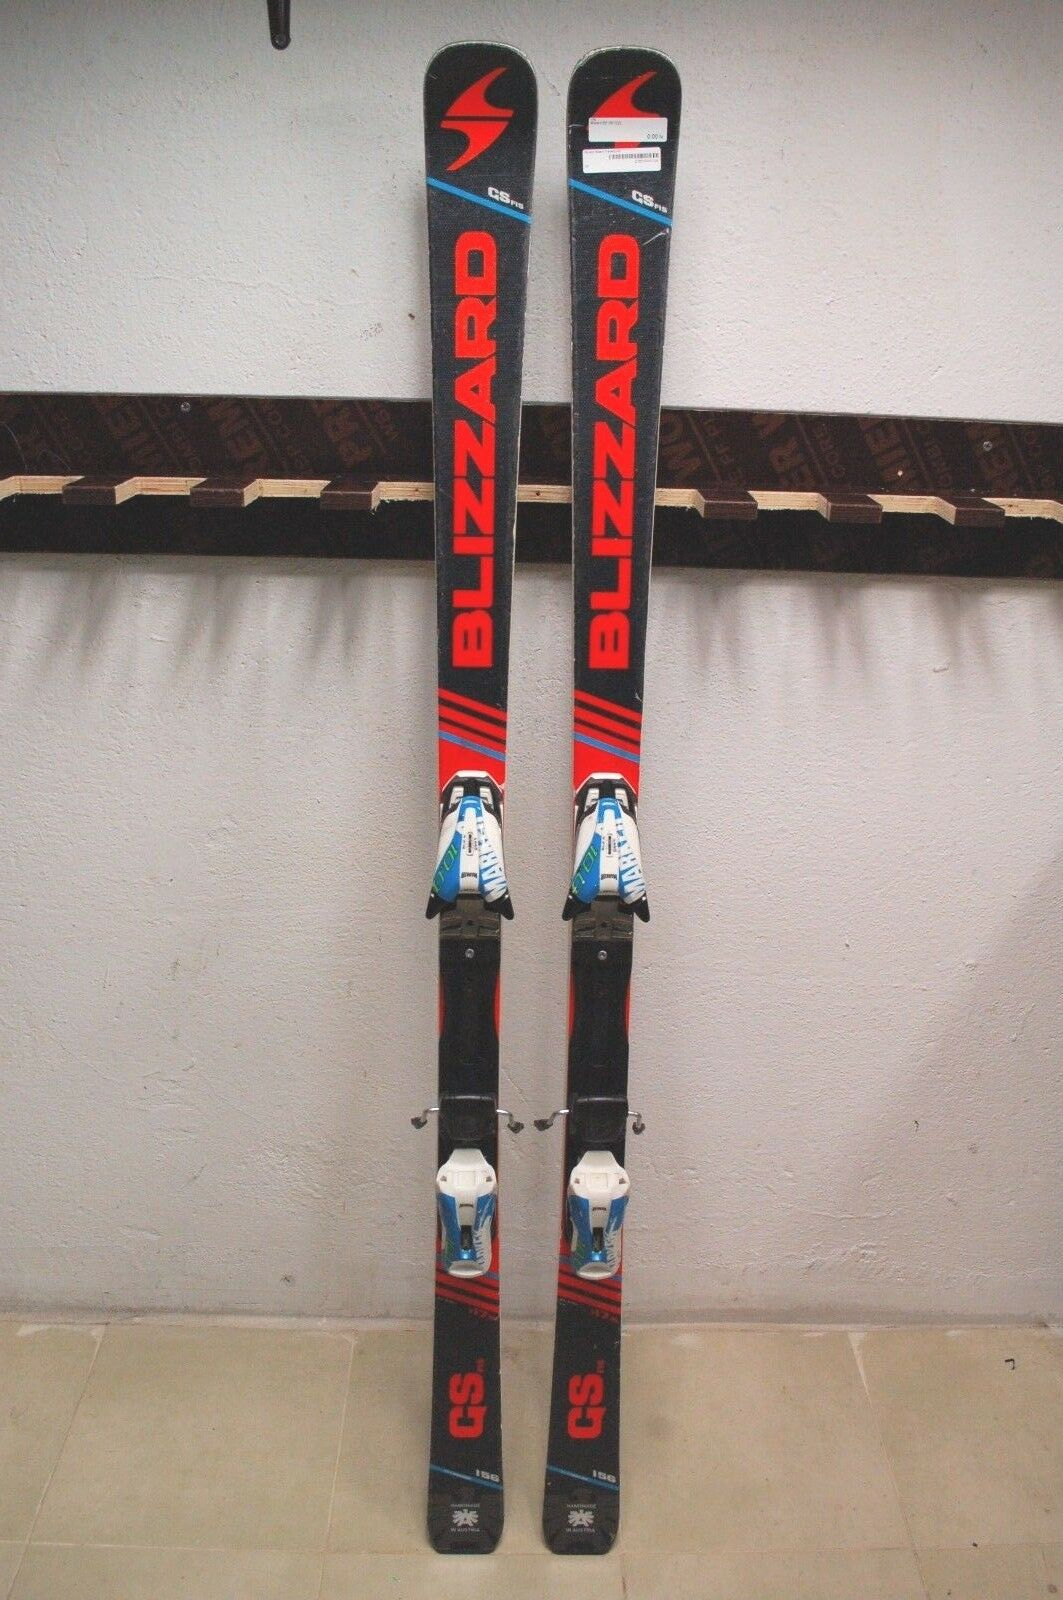 Blizzard GS FIS 156 cm Ski + Marker Comp 10.0 Bindings